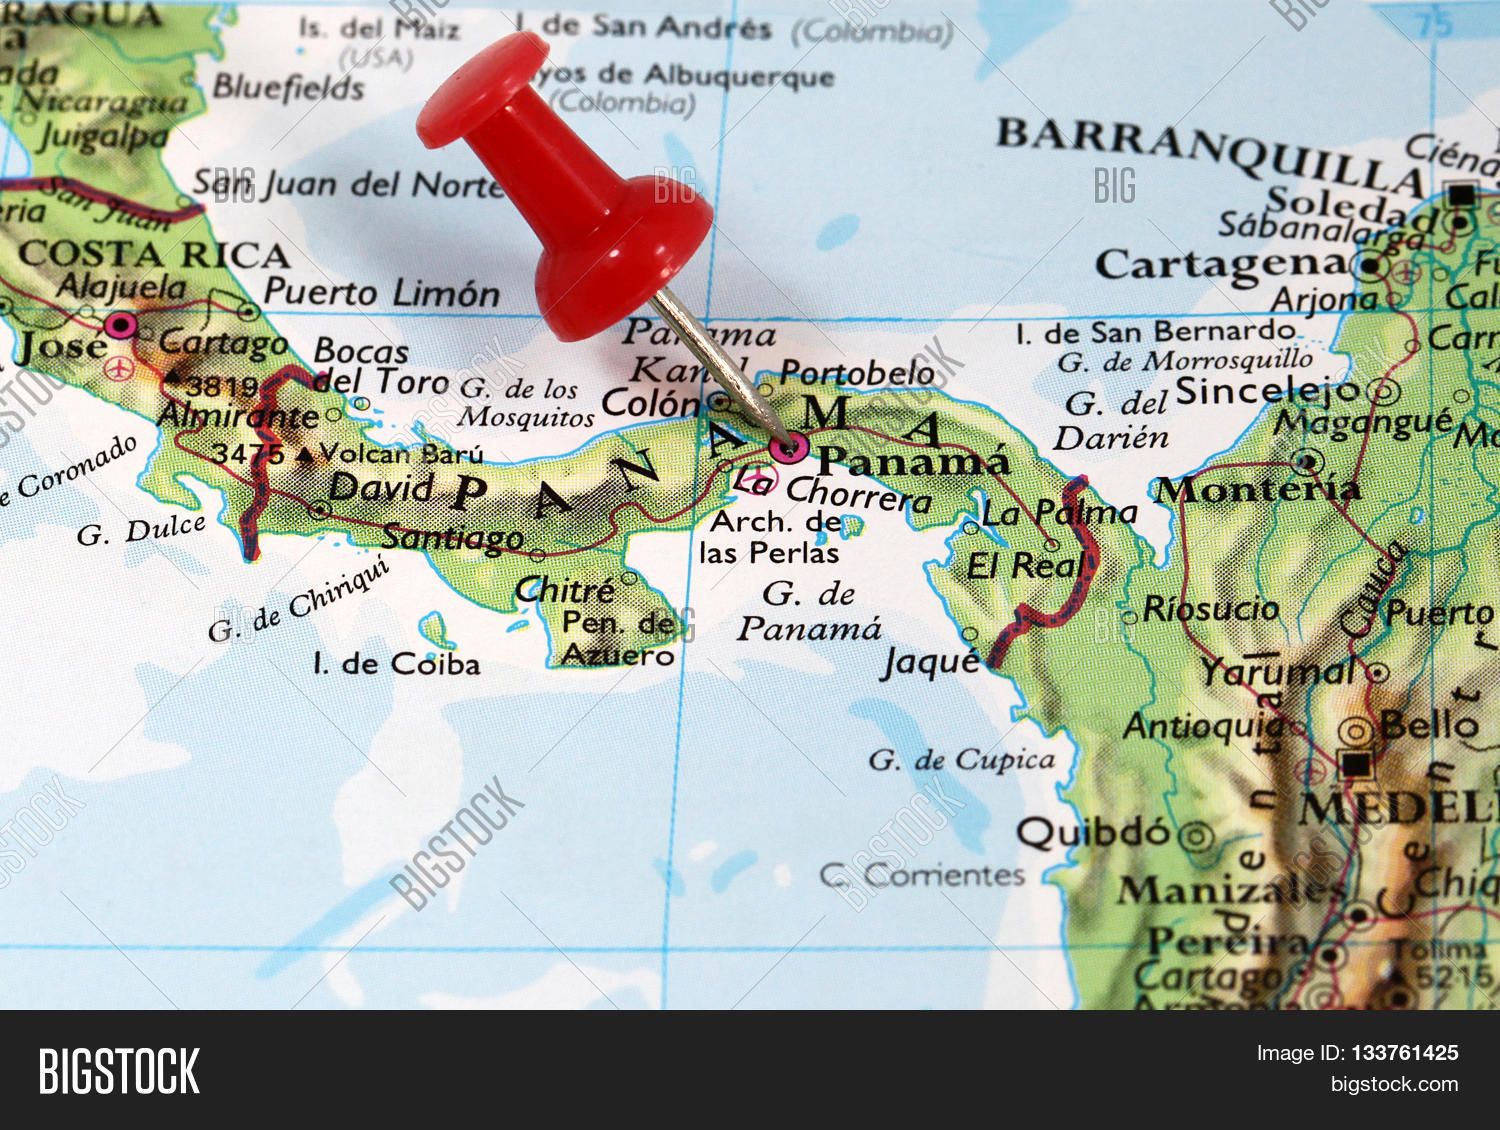 Map Pin Point Panama Image & Photo (Free Trial) | Bigstock